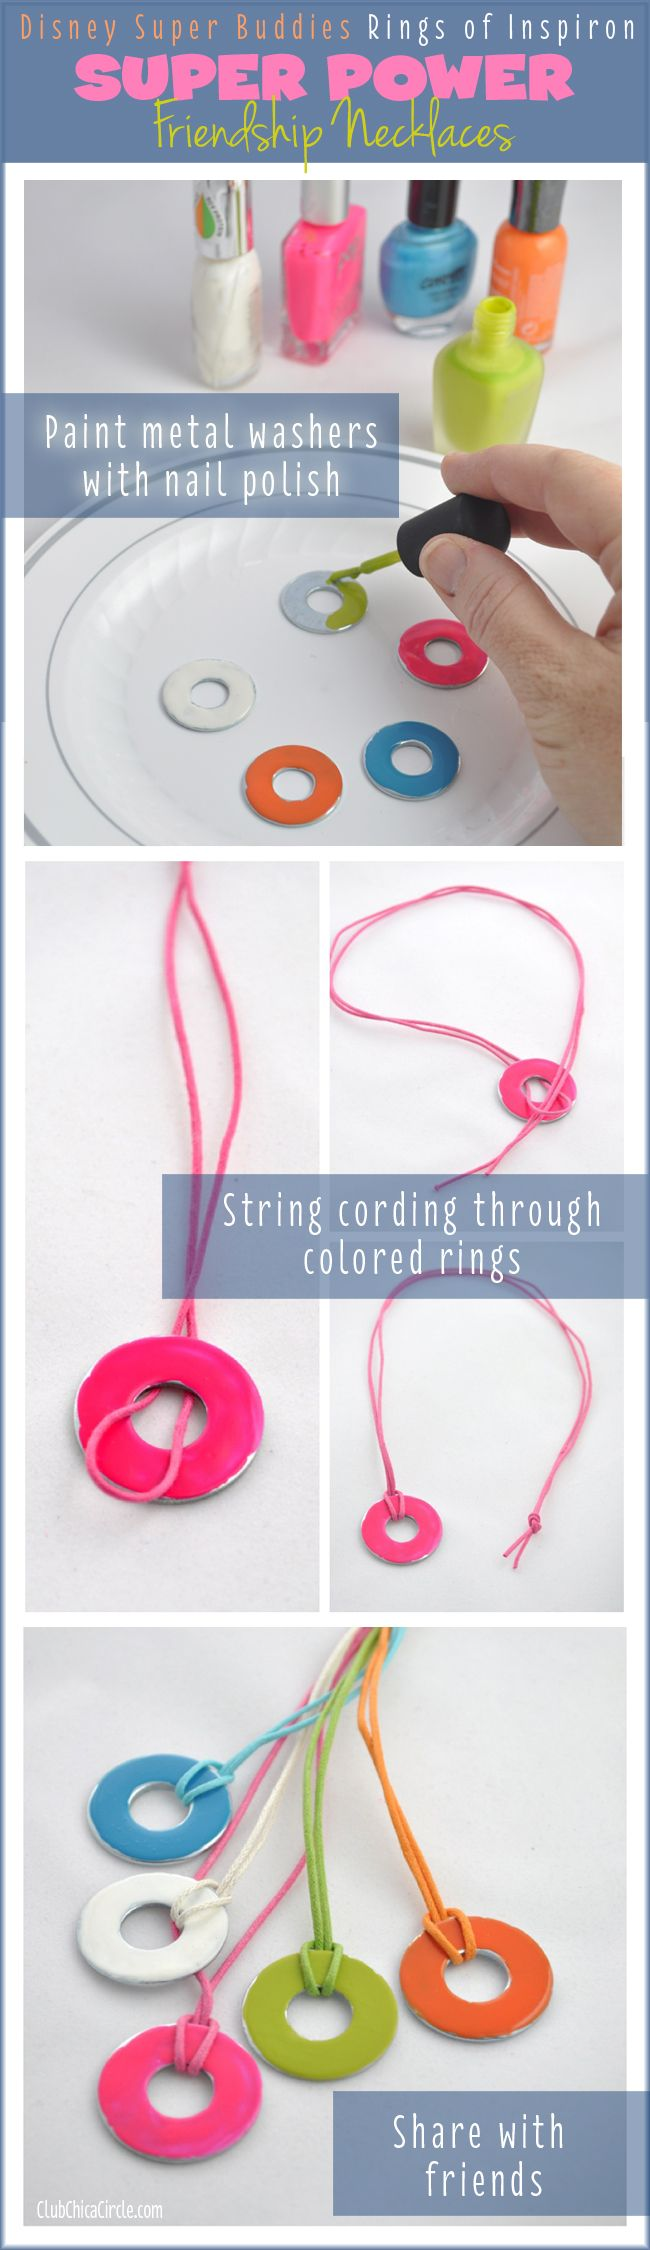 Good Friendship Craft Ideas Kids Part - 11: Cute Friendship Necklace Craft Idea Based On The Disney Super Buddies  Movie. - Turn Simple Metal Washers Into Lovely Necklaces And Share With  Friends.